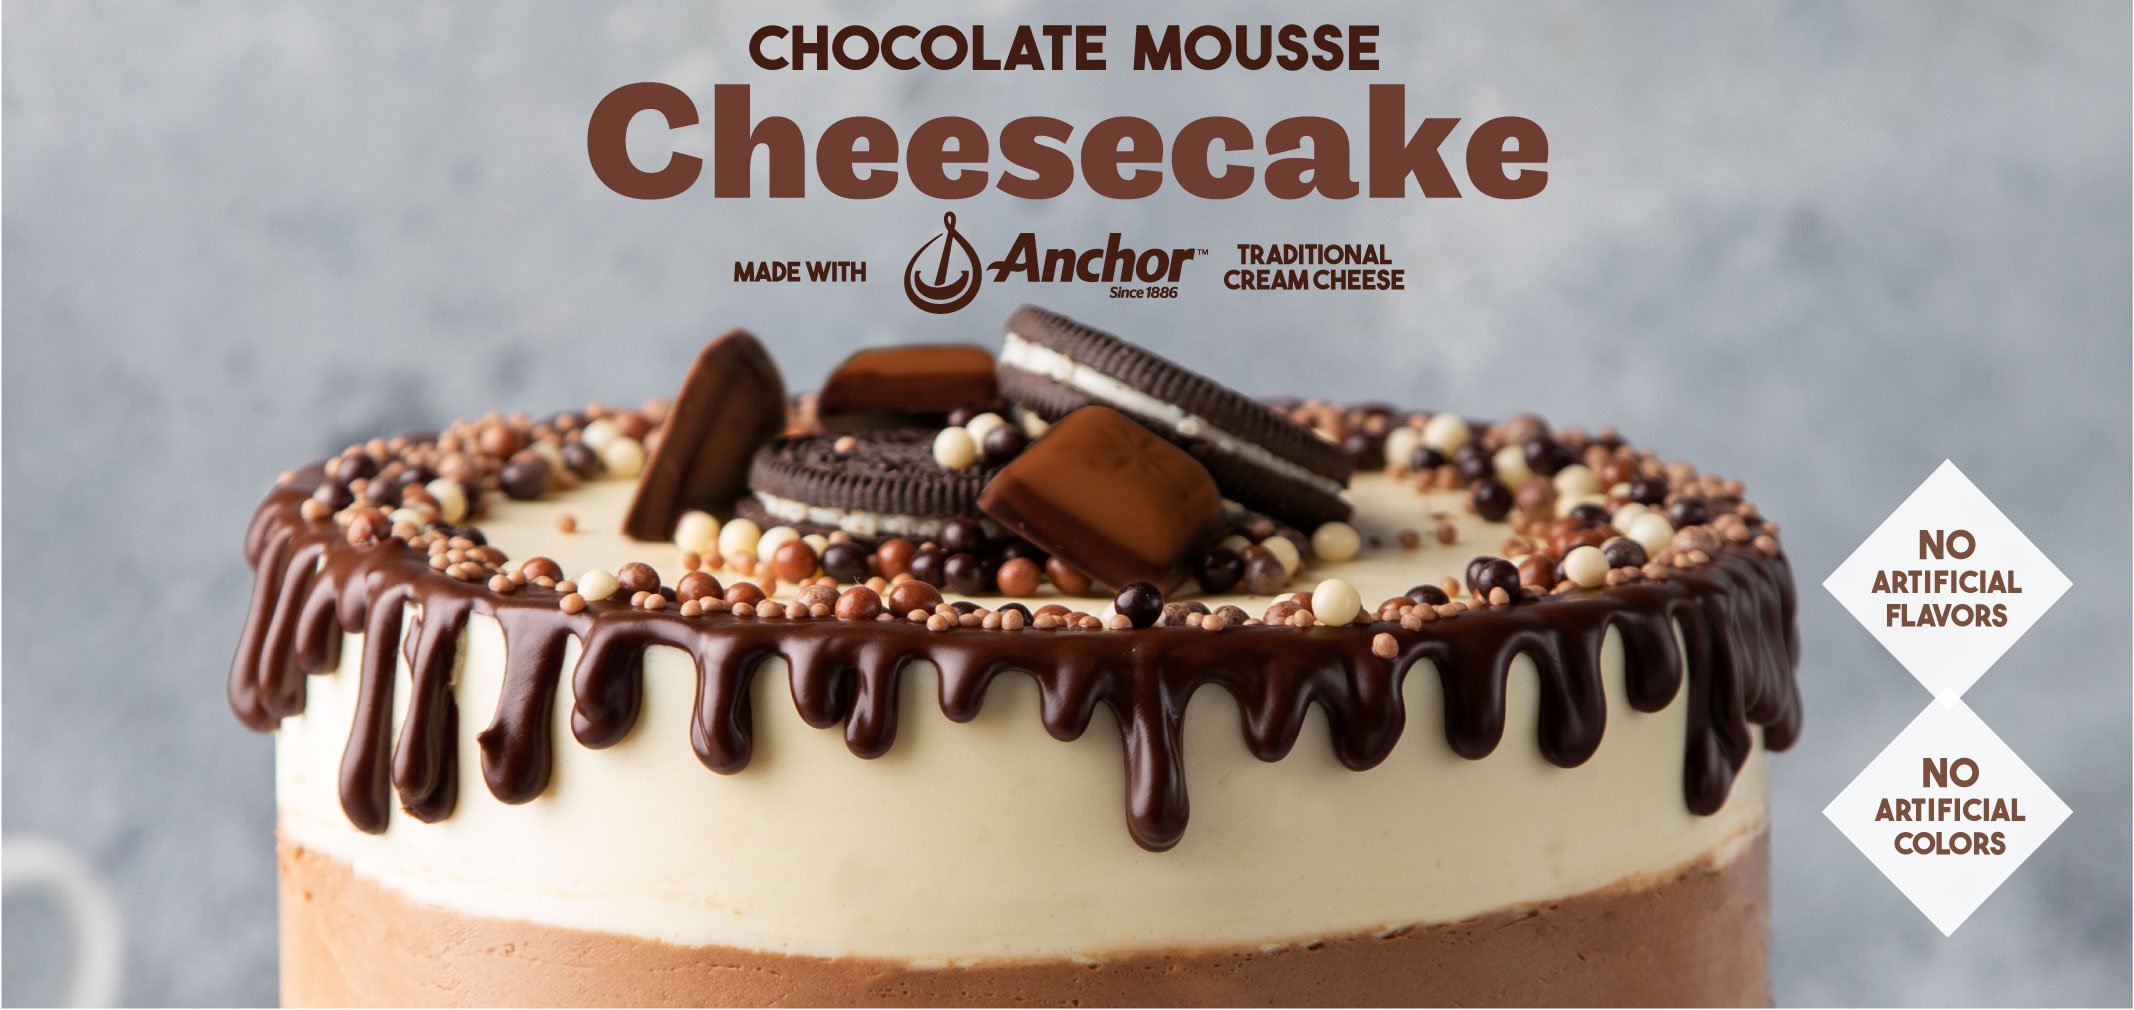 chocolate mousse cheesecake made with anchor (TM) traditional cream cheese label image